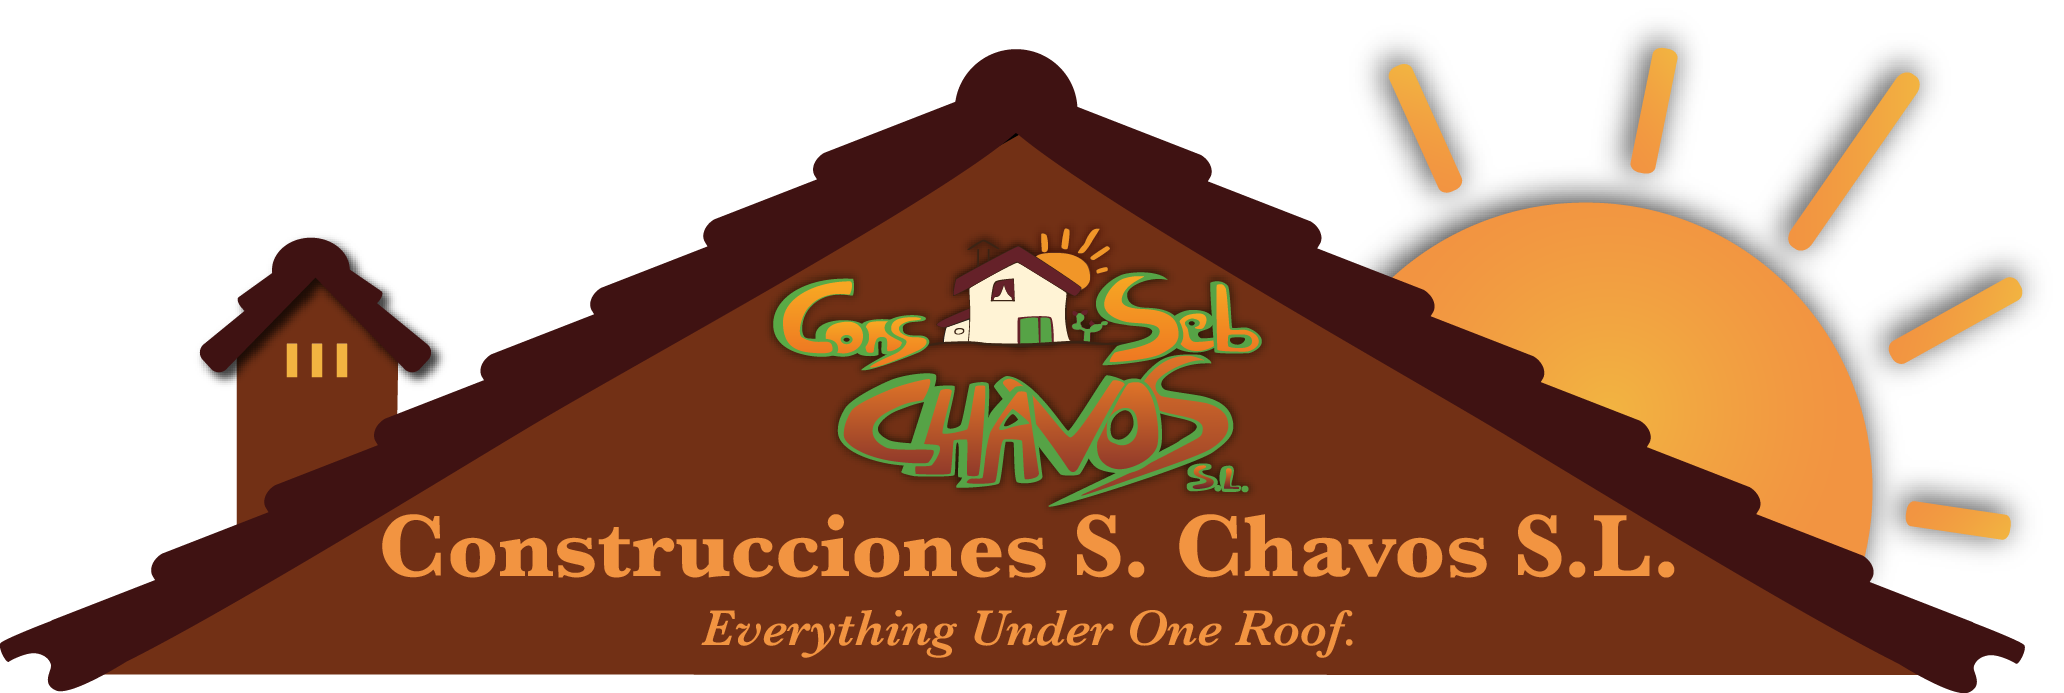 Building contractors S-Chavos - Constructions and Renovations